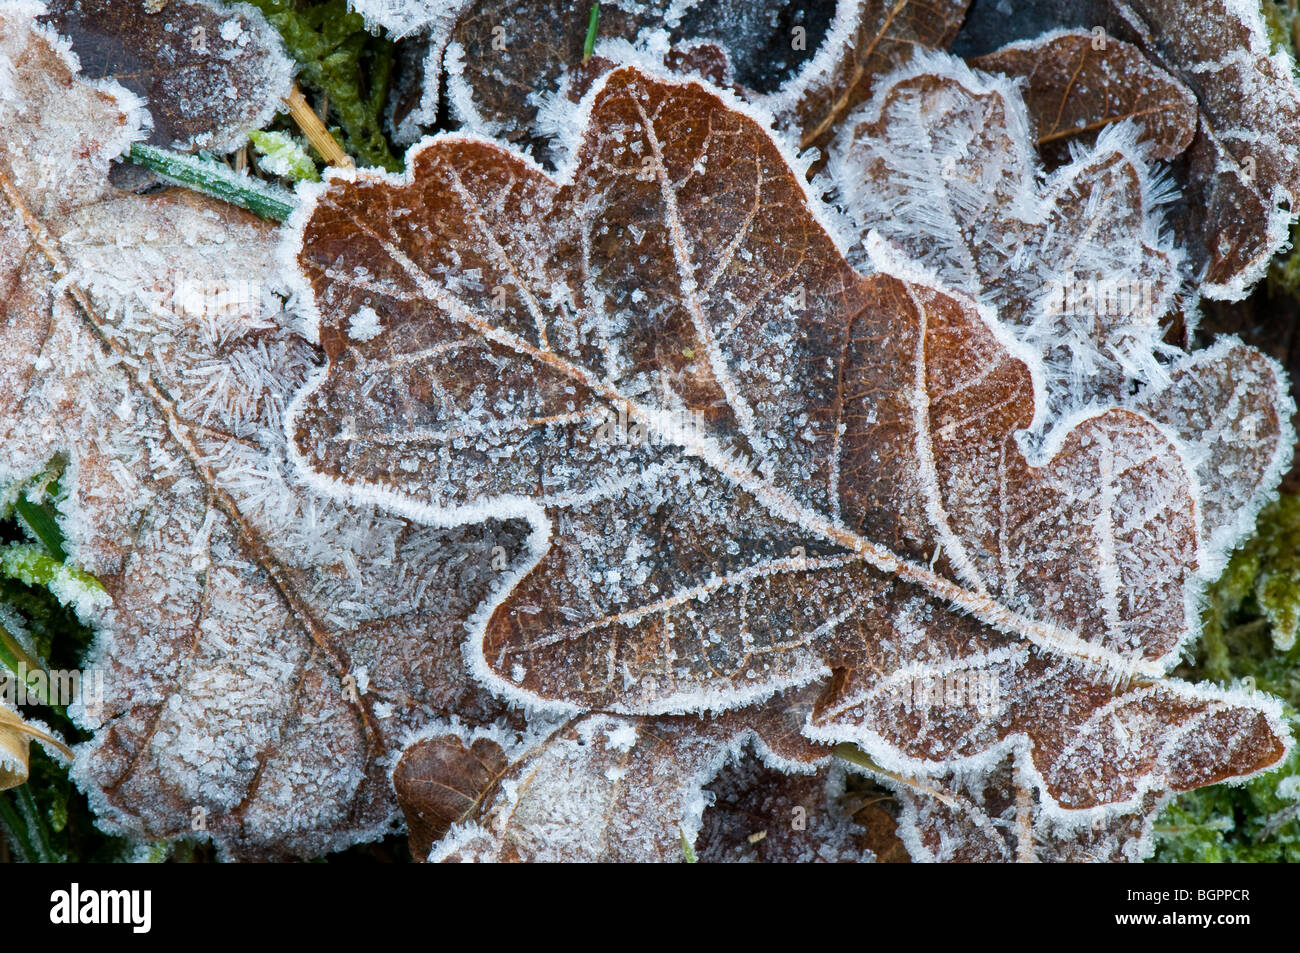 Frosted fallen oak leaf showing the edges and veins on the leaf, Devon UK Stock Photo